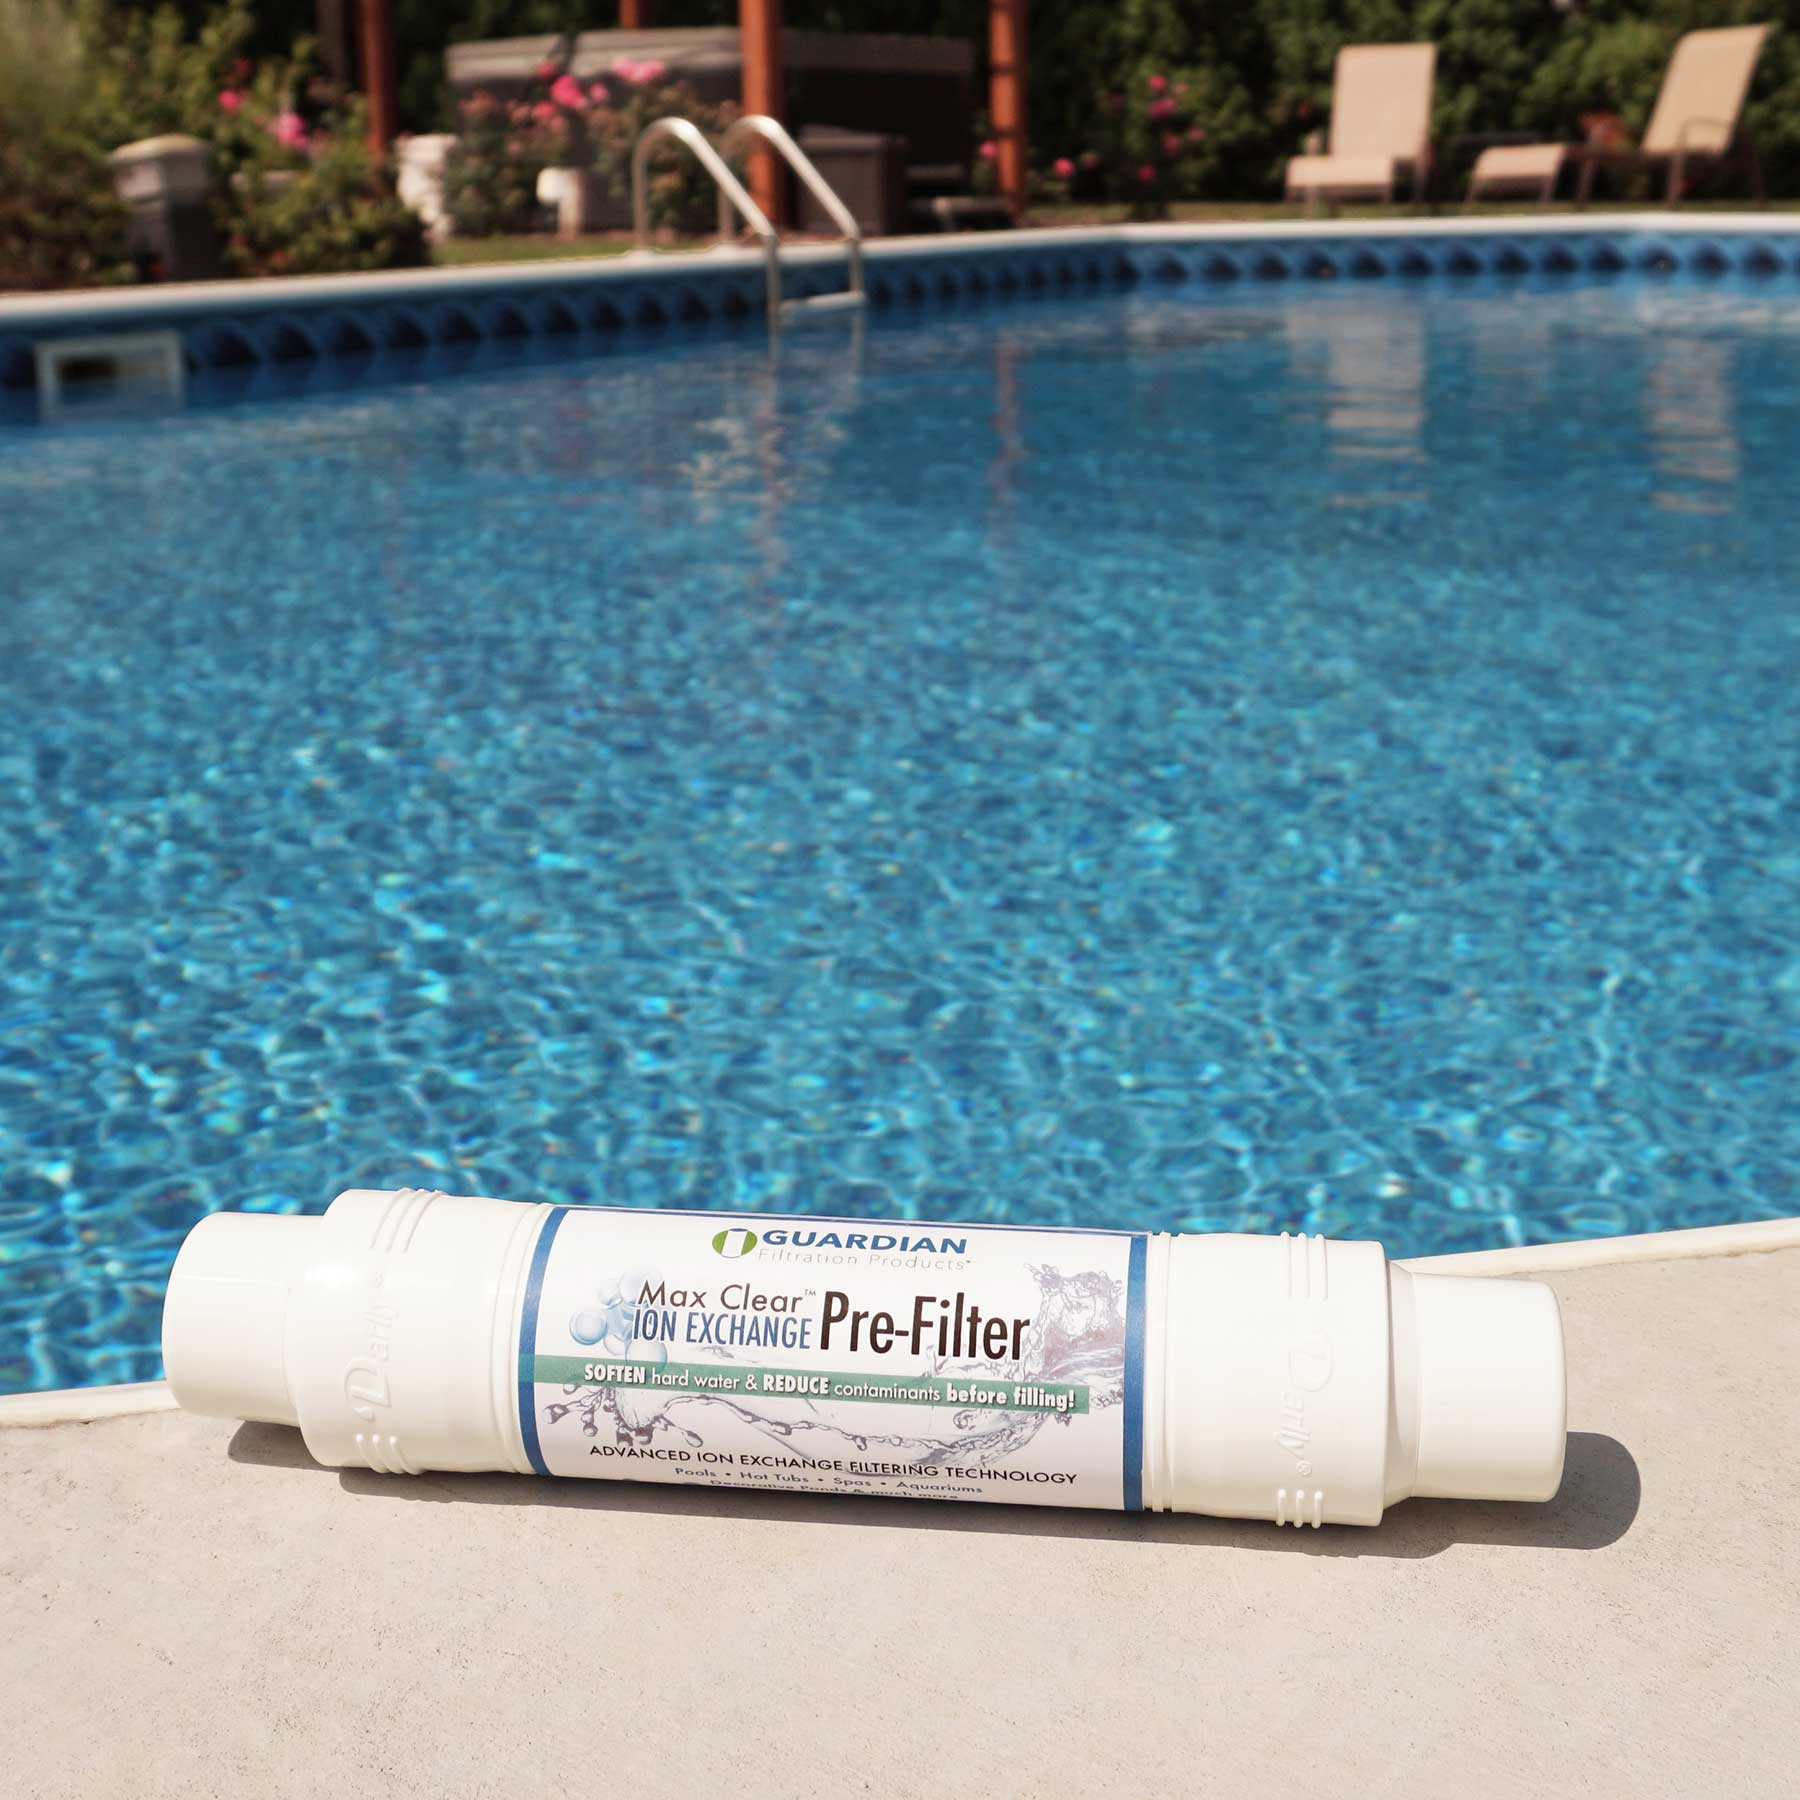 Max Clear Ion Exchange Pre Filter U2022 Garden Hose Filter   Fills Pools U0026 Spas